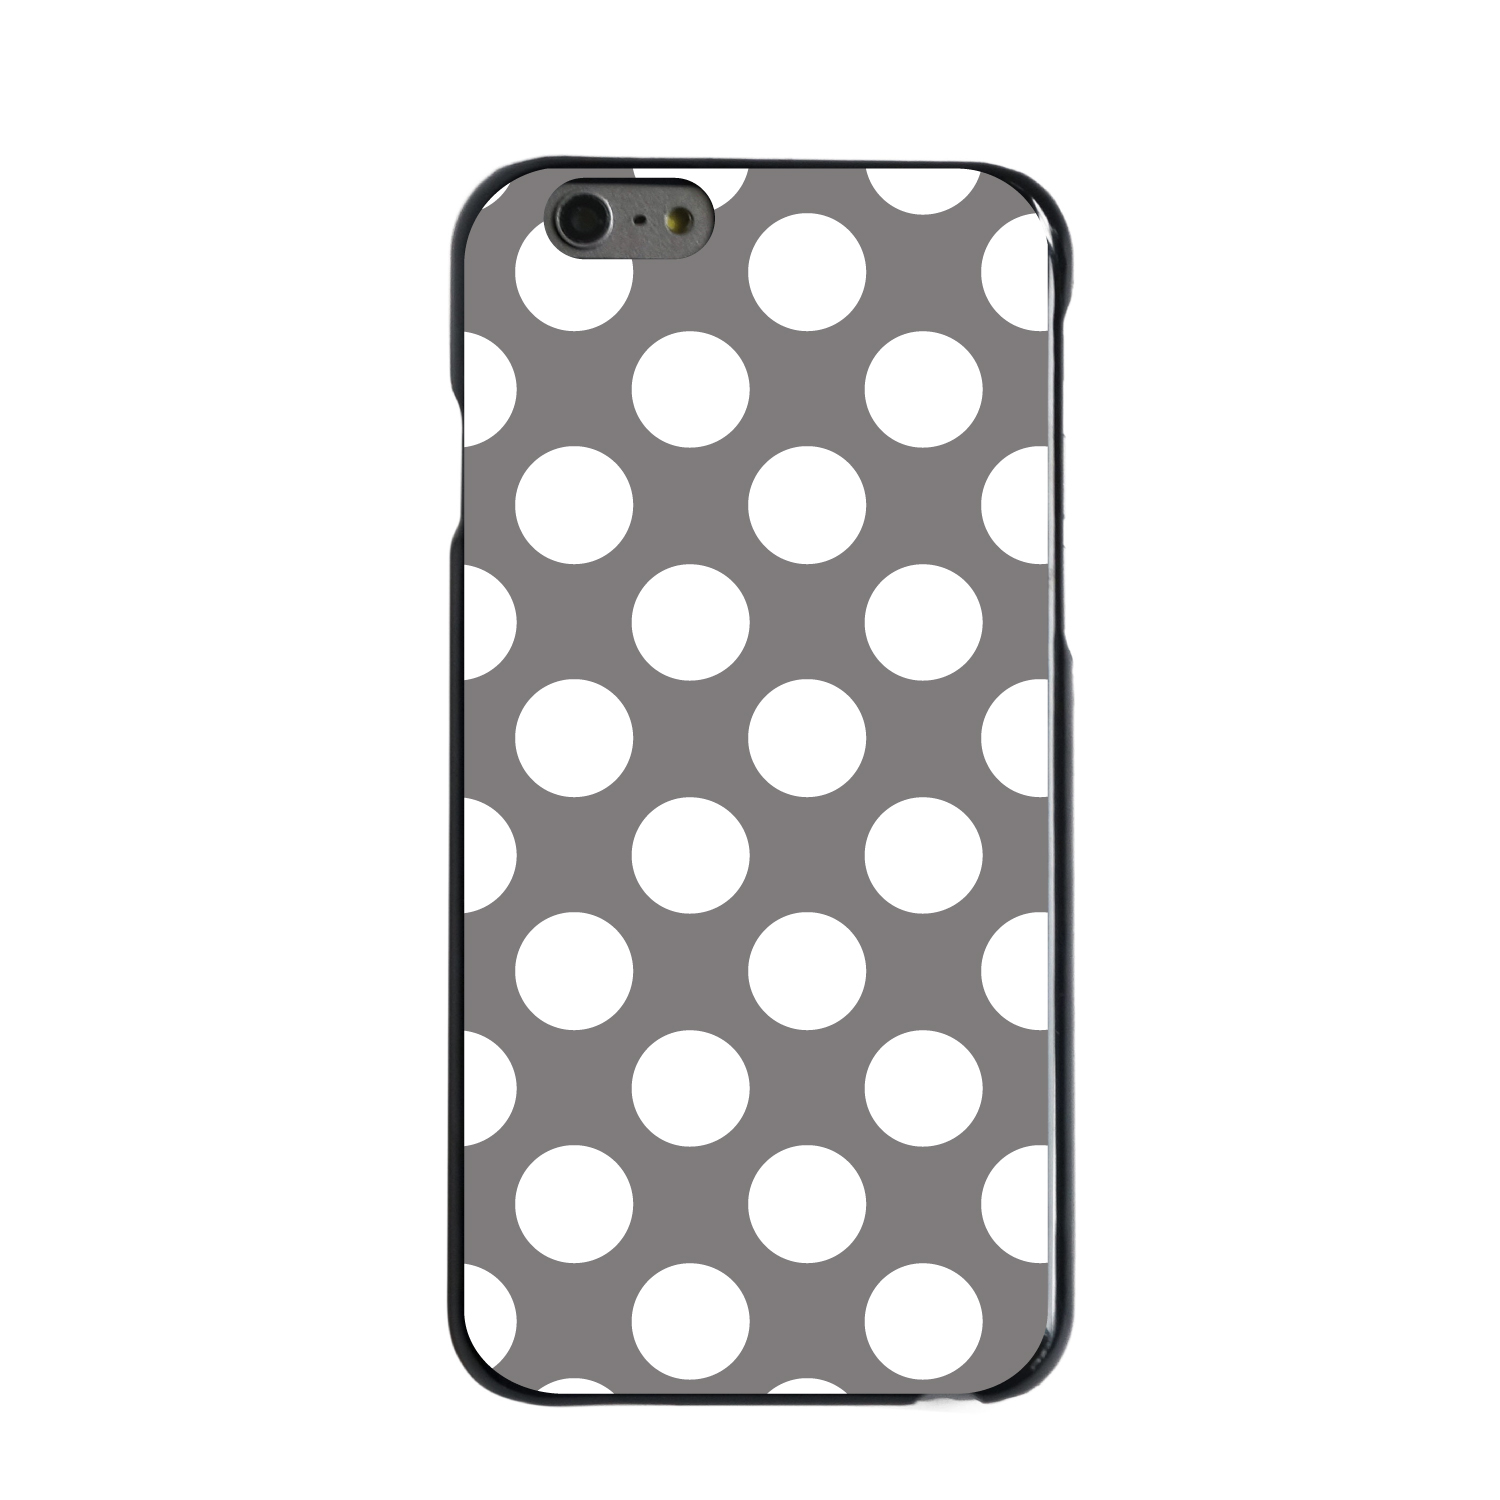 "CUSTOM Black Hard Plastic Snap-On Case for Apple iPhone 6 / 6S (4.7"" Screen) - White & Grey Polka Dots"